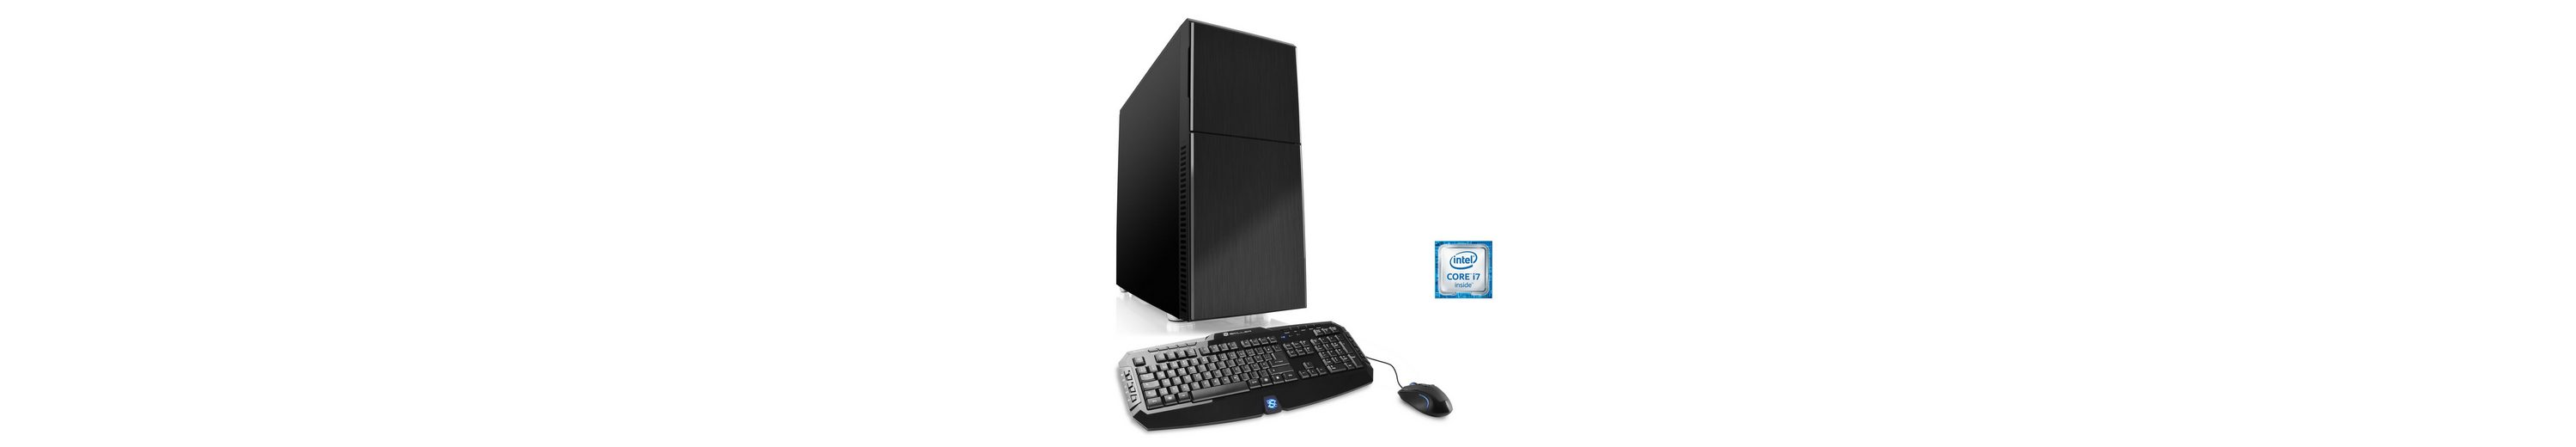 CSL Gaming PC | Core i7-6700 | GeForce GTX 1060 | 16 GB RAM | SSD »Speed T7697 Windows 10 Home«